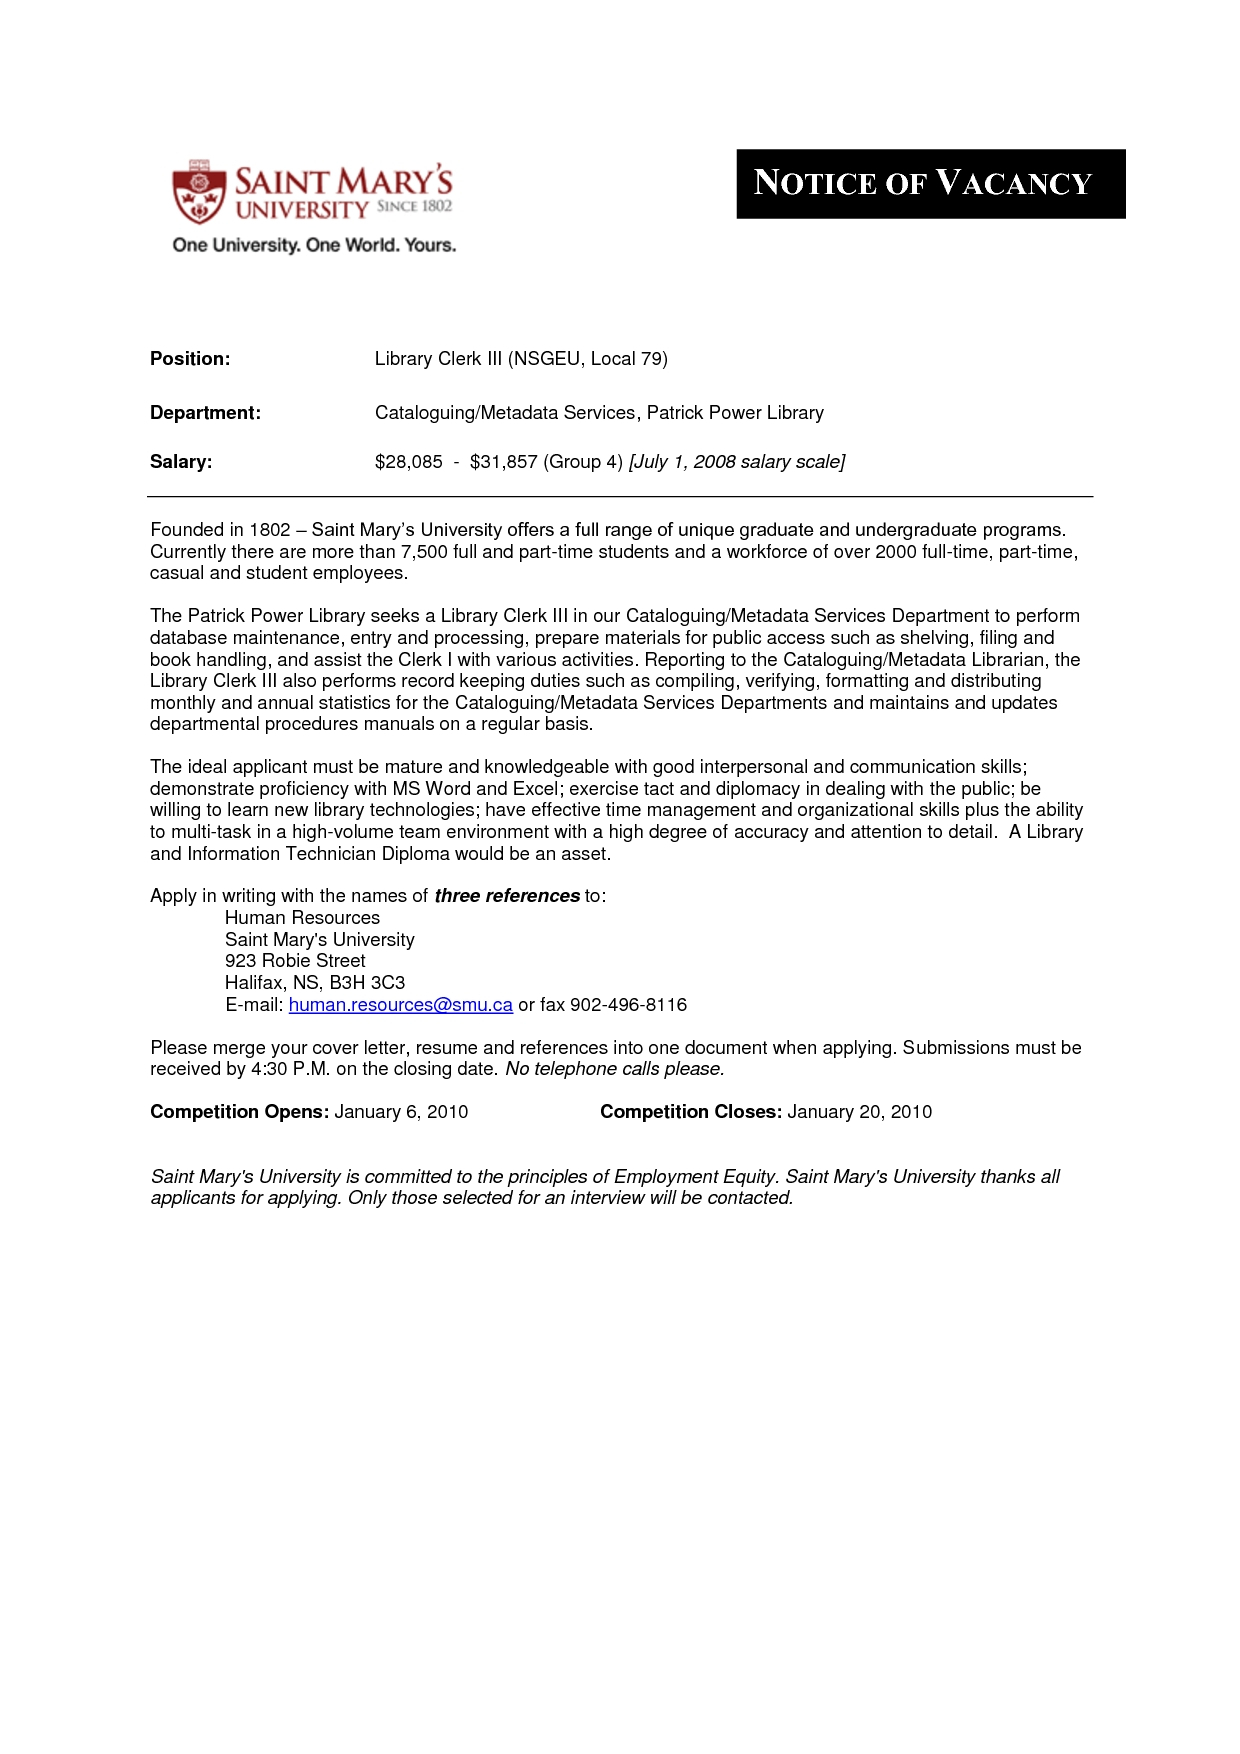 Casual Cover Letter Template - Essays that Worked Examples Successful College Applications How